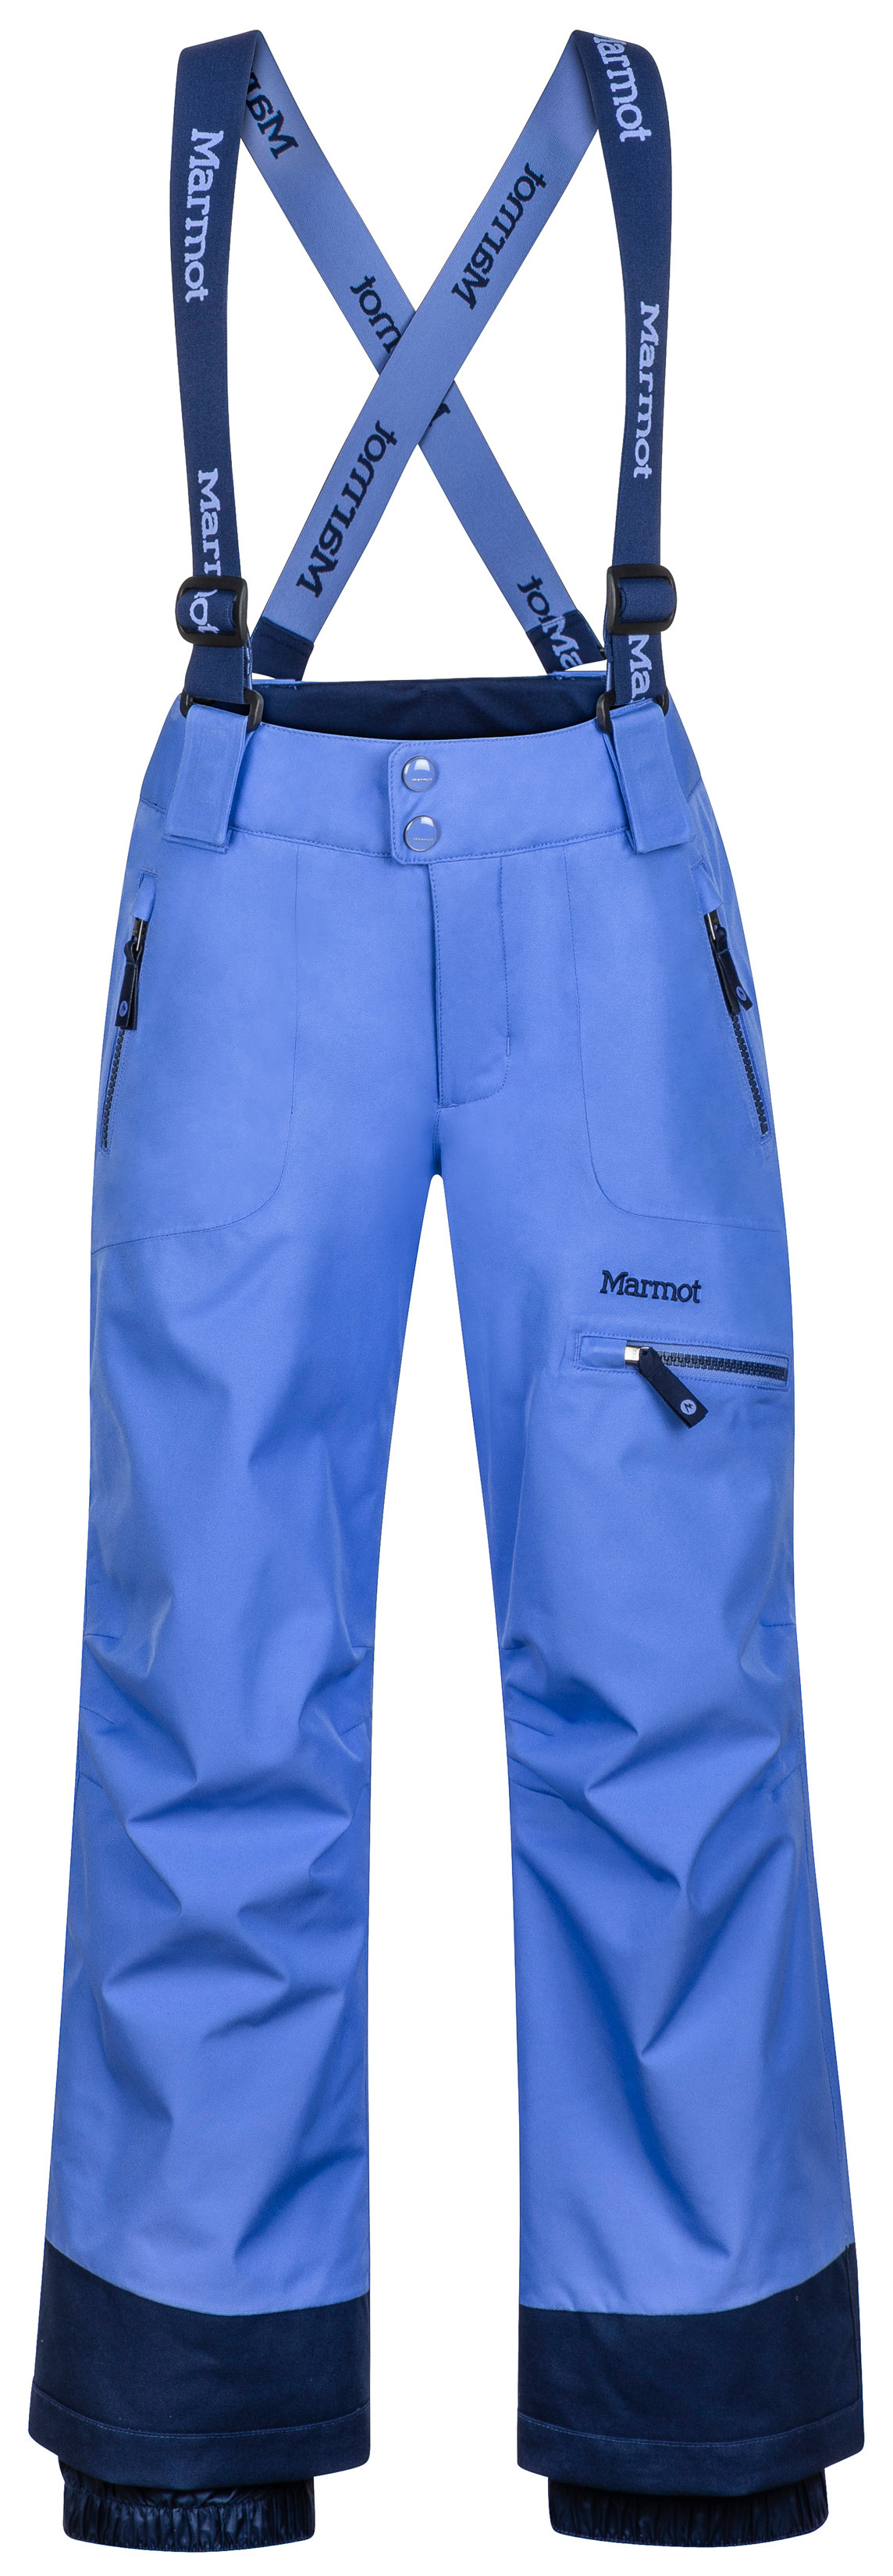 802d371eb Marmot Starstruck Pant - Girls 77890-2814-XS, 58% Off with Free S&H —  CampSaver